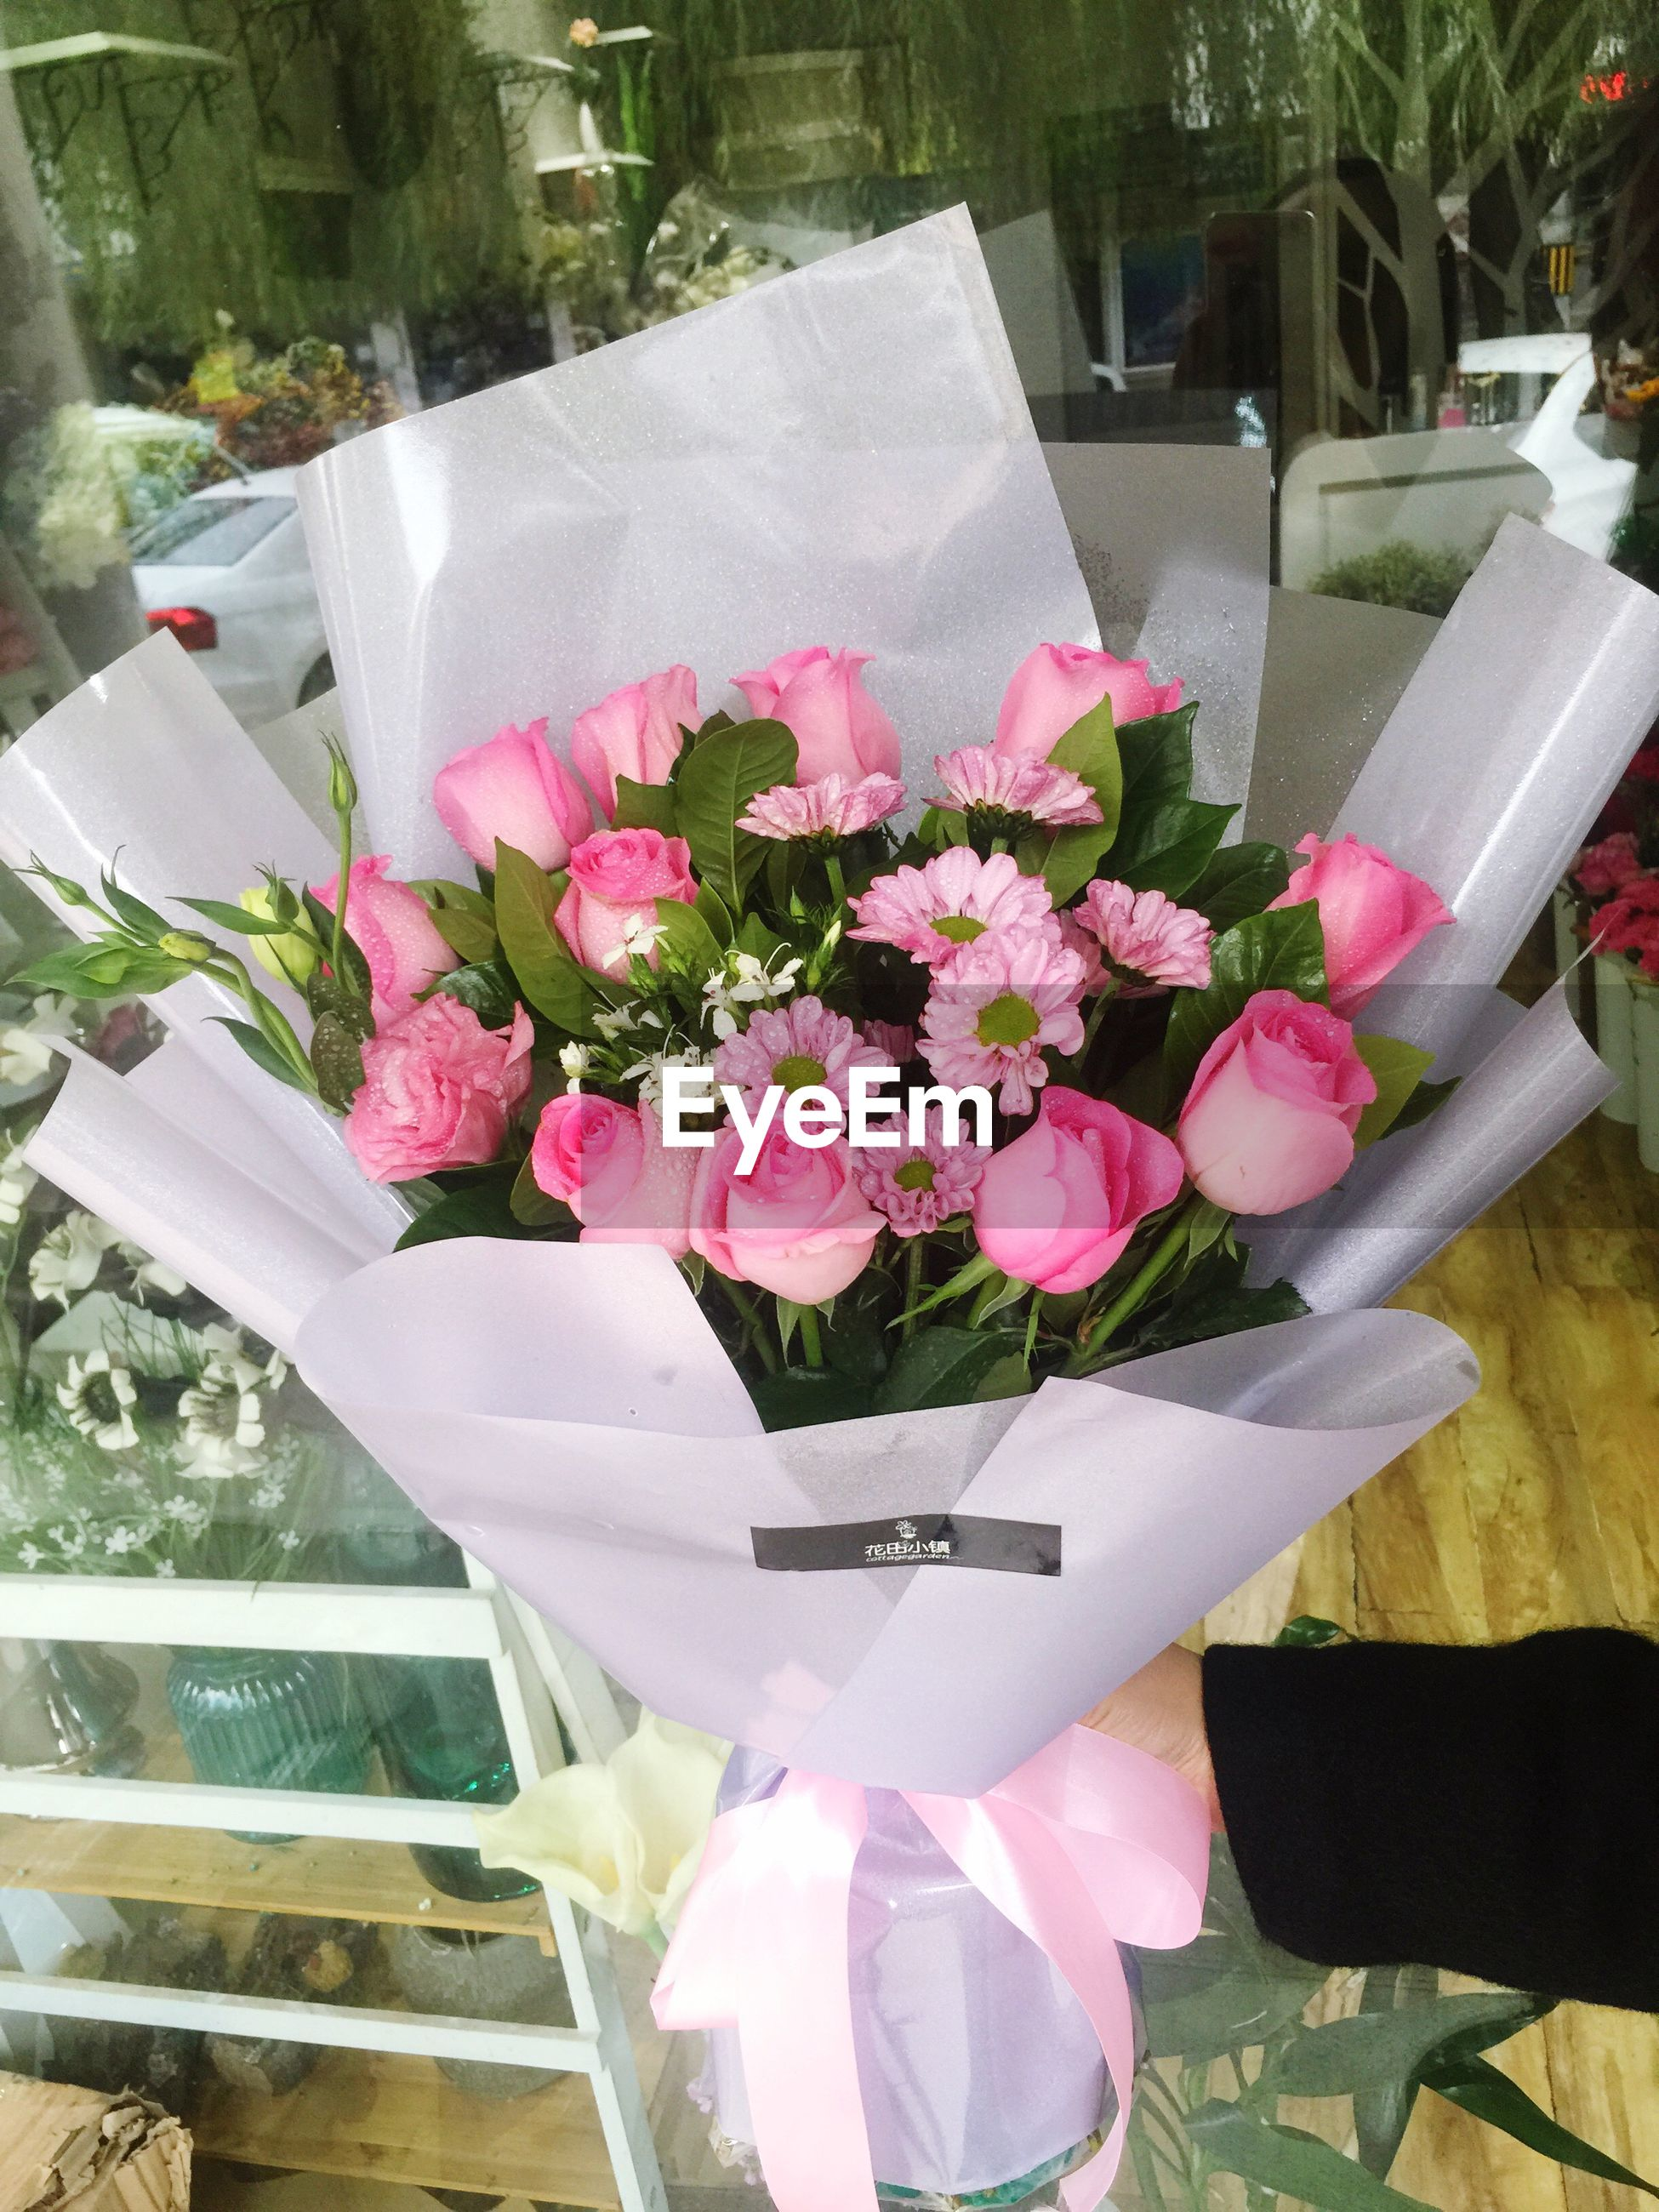 flower, pink color, bouquet, no people, flower arrangement, high angle view, freshness, petal, outdoors, close-up, nature, table, day, gift, flower head, wedding reception